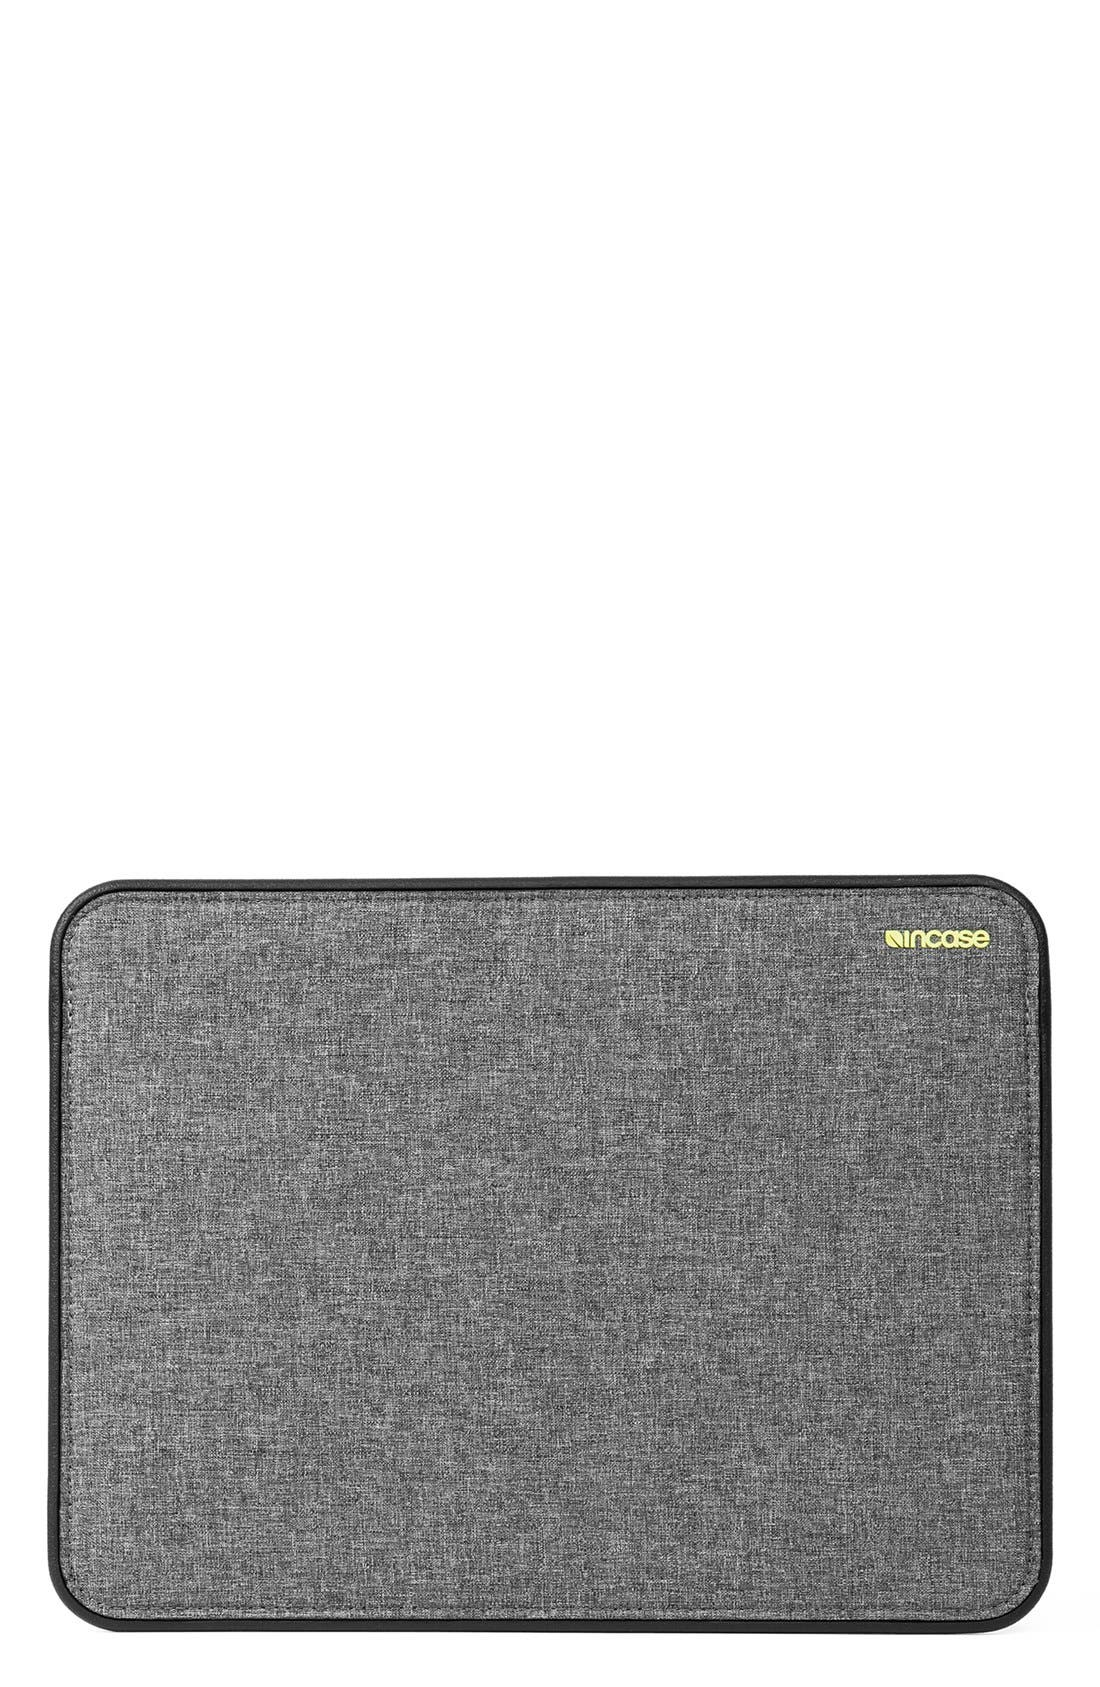 Main Image - Incase Designs 'Icon' MacBook Air Laptop Sleeve (13 Inch)